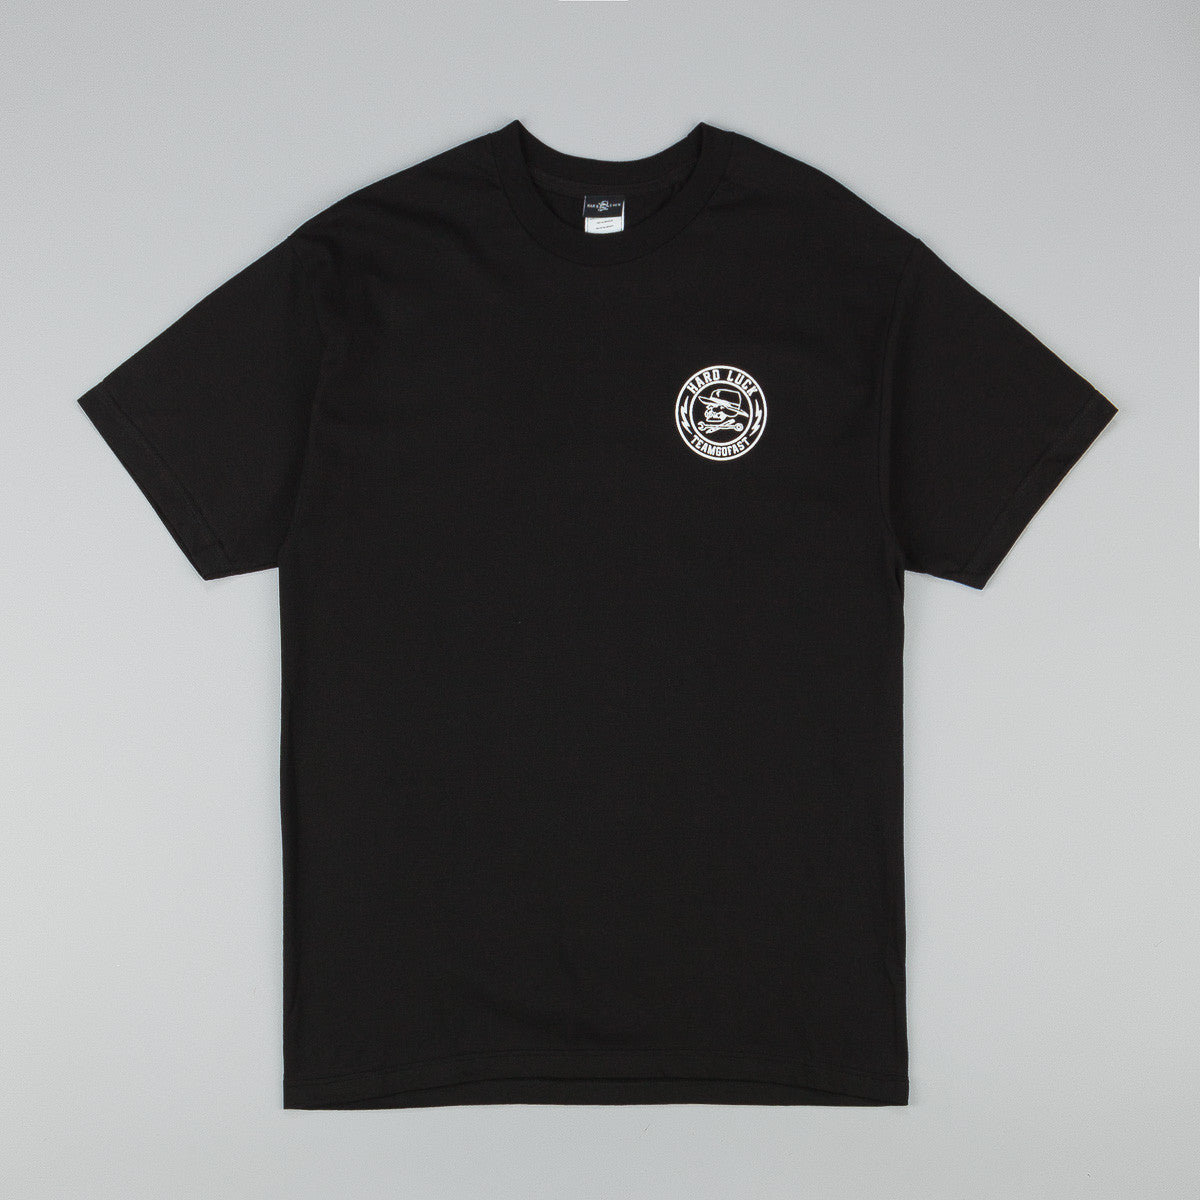 Hard Luck Bolts TeamGoFast T-Shirt - Black